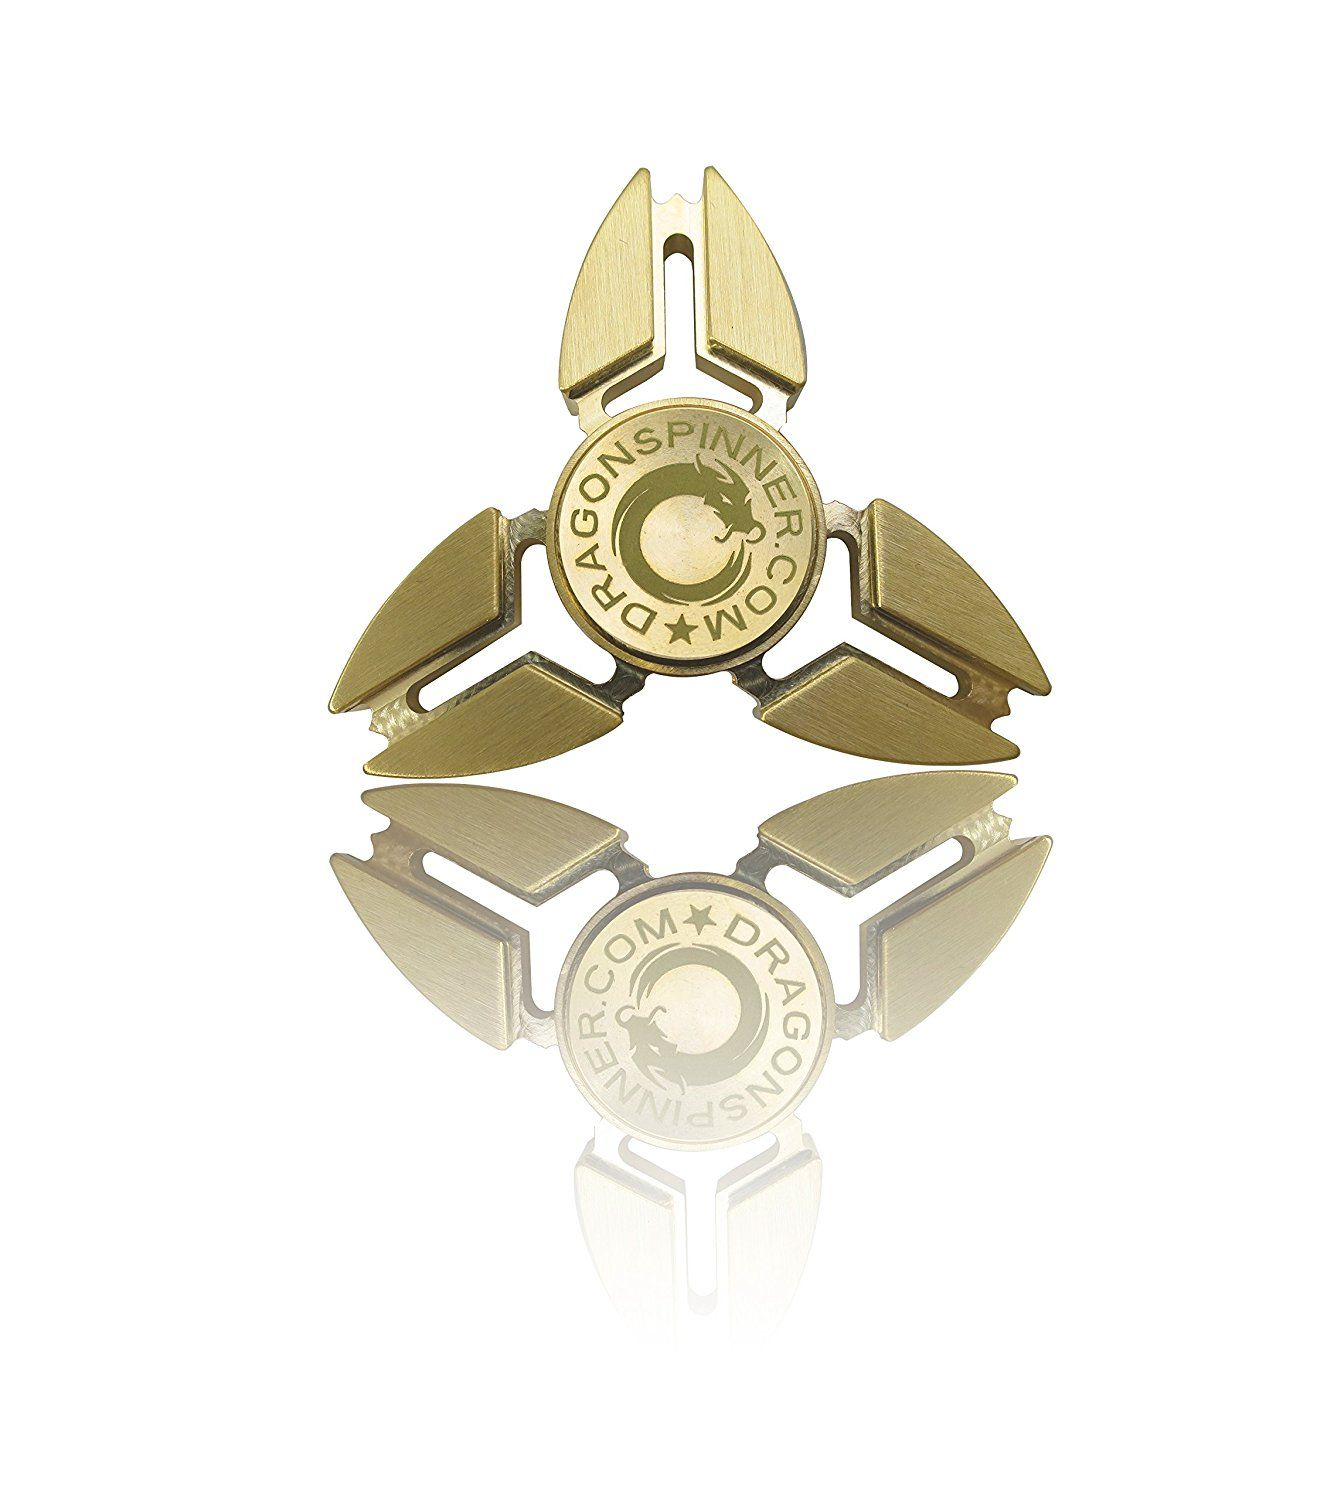 NEW 2017 ORIGINAL DRAGON SPINNER - Trio Brass Metal Hand Fidget Spinner Toy EDC Luxury Helps You Focus And Reduce Stress